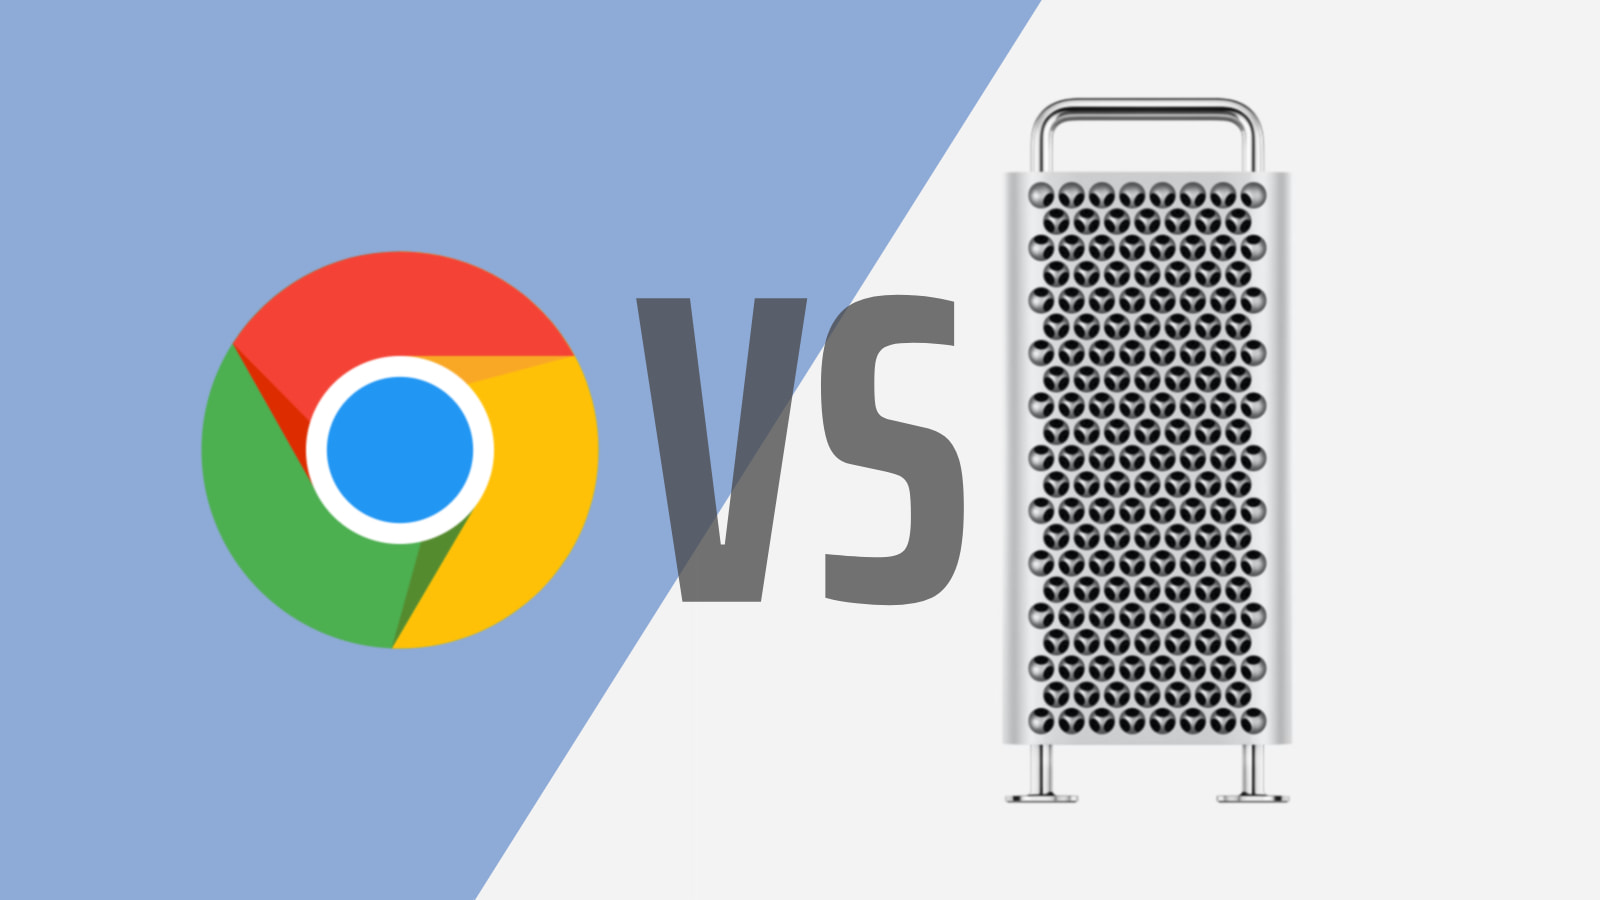 TLD pits 1.5 TB of RAM in the 2019 Mac Pro against Google Chrome. Who will win?